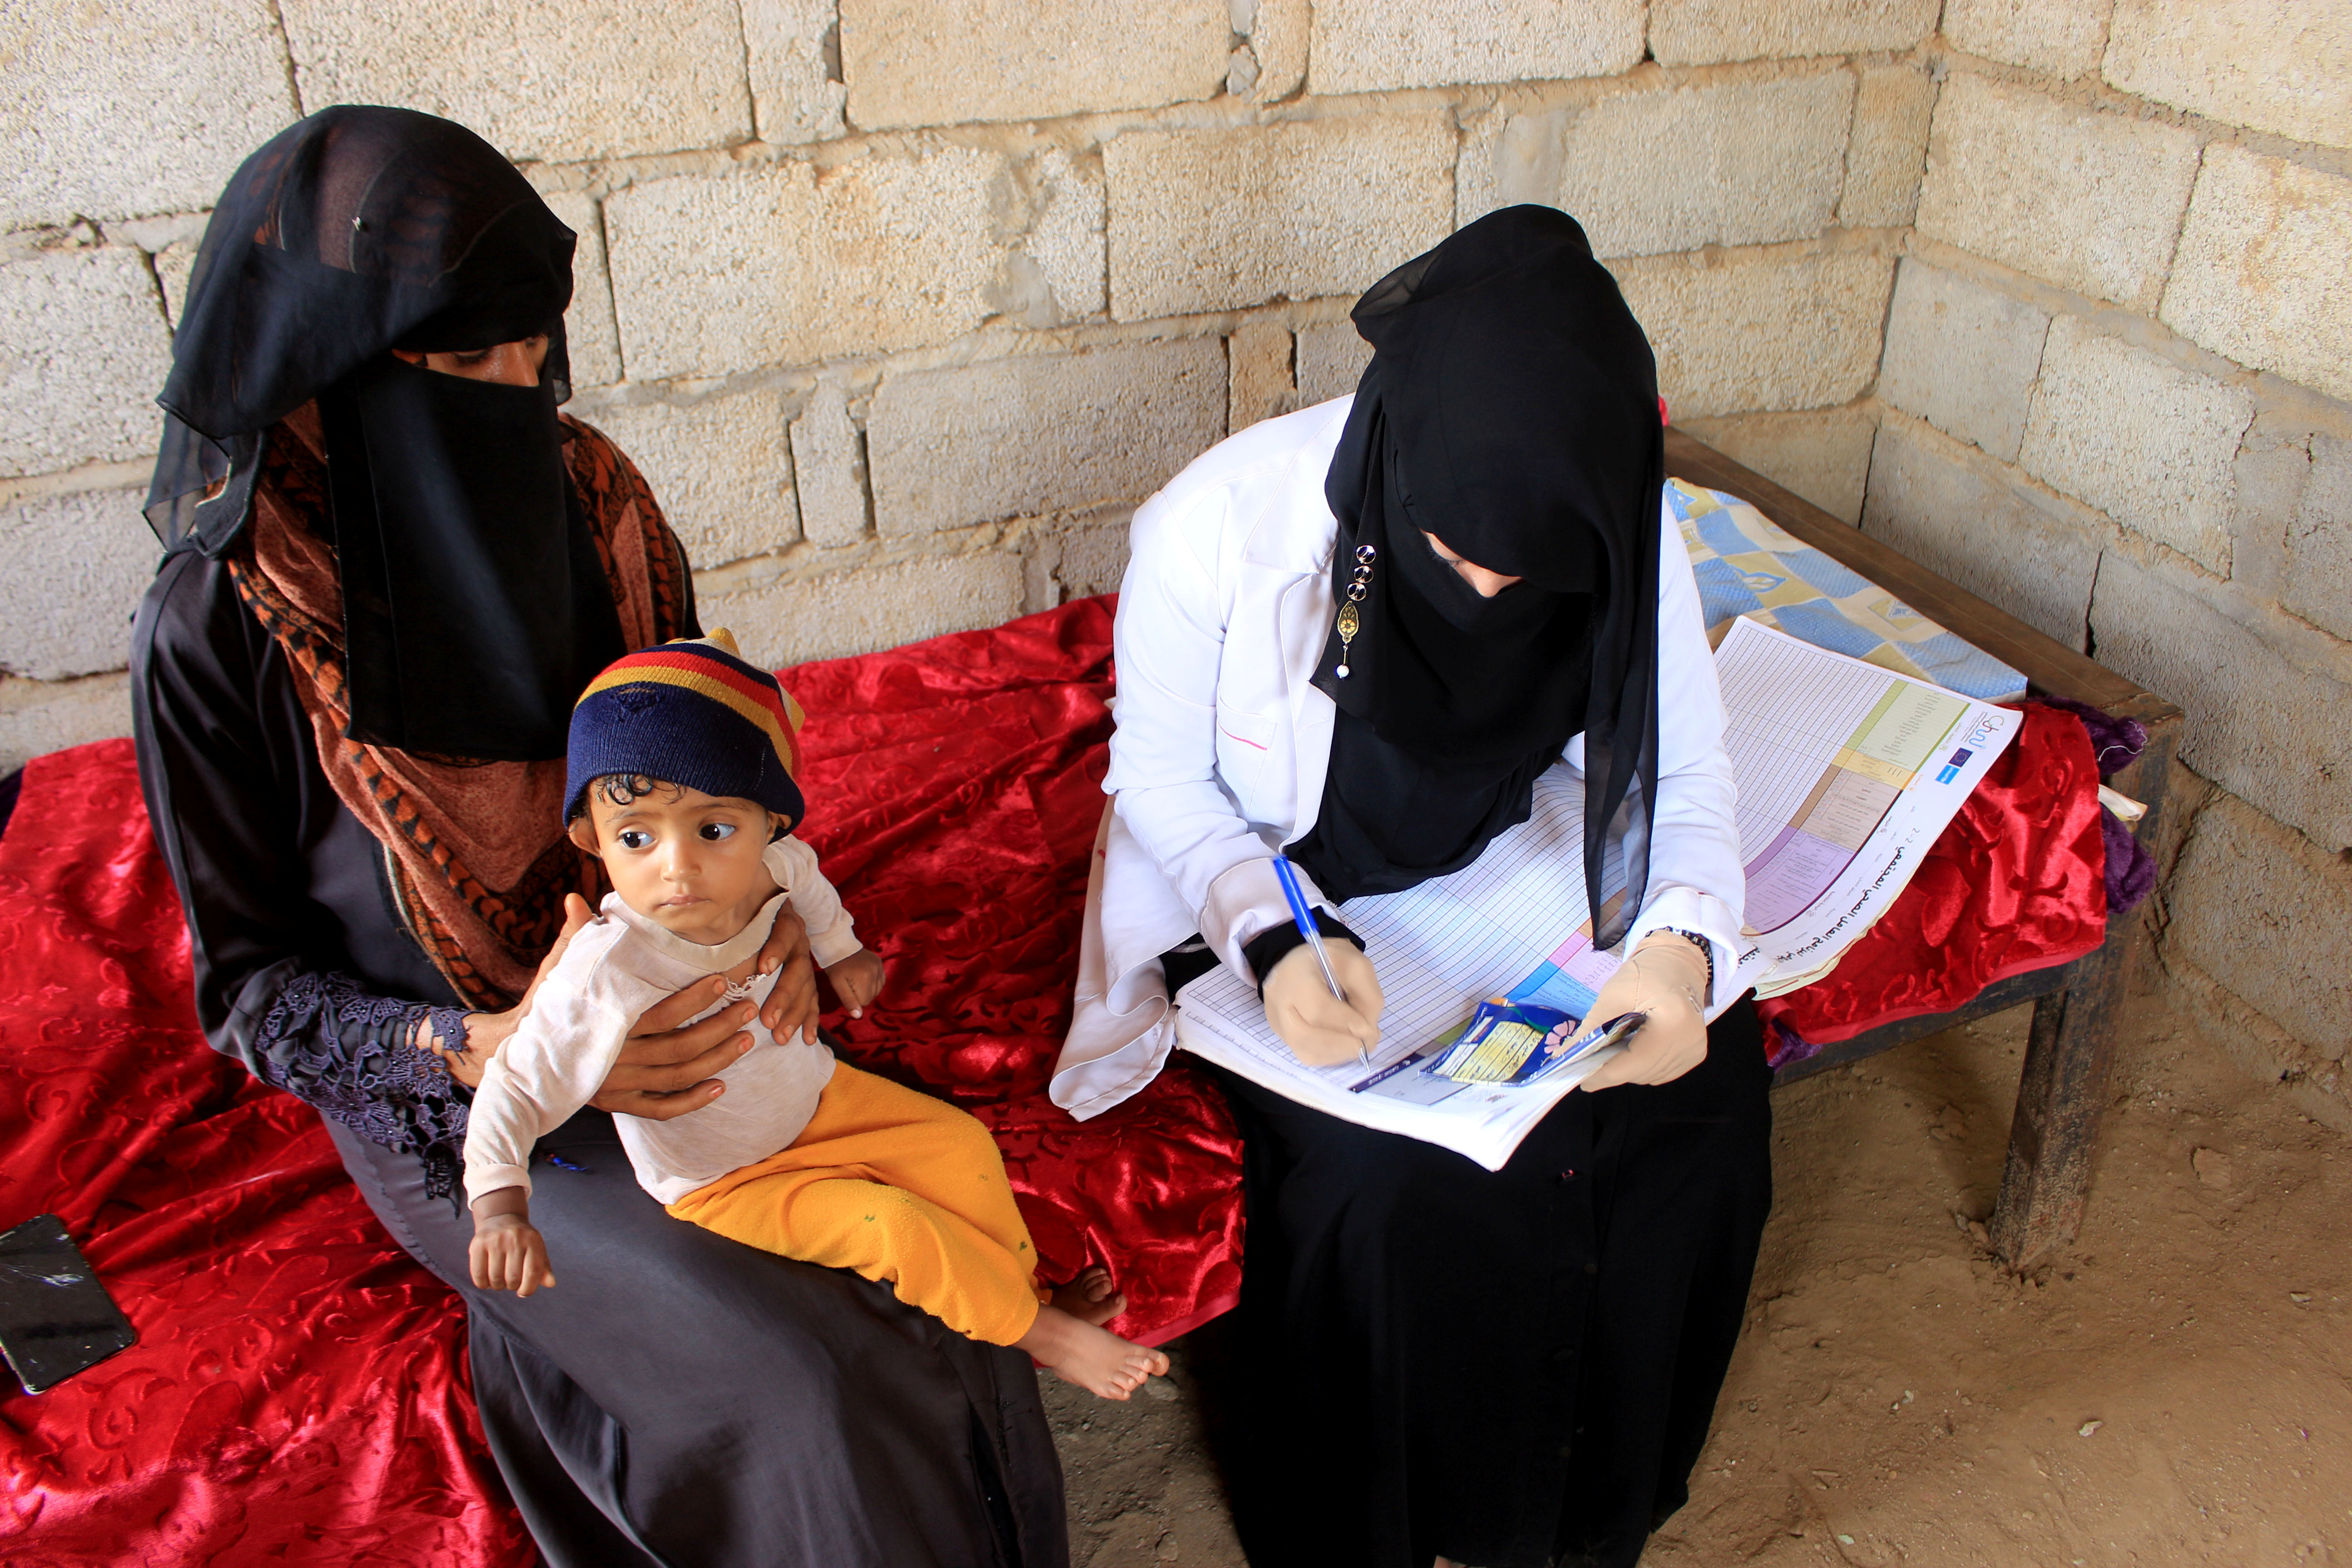 Volunteer health worker Ashwaq Muharram obtains the information about a boy as she assesses his nutritional status in Abs, Yemen August 31, 2021. REUTERS/Eissa Alragehi  NO RESALES. NO ARCHIVES.